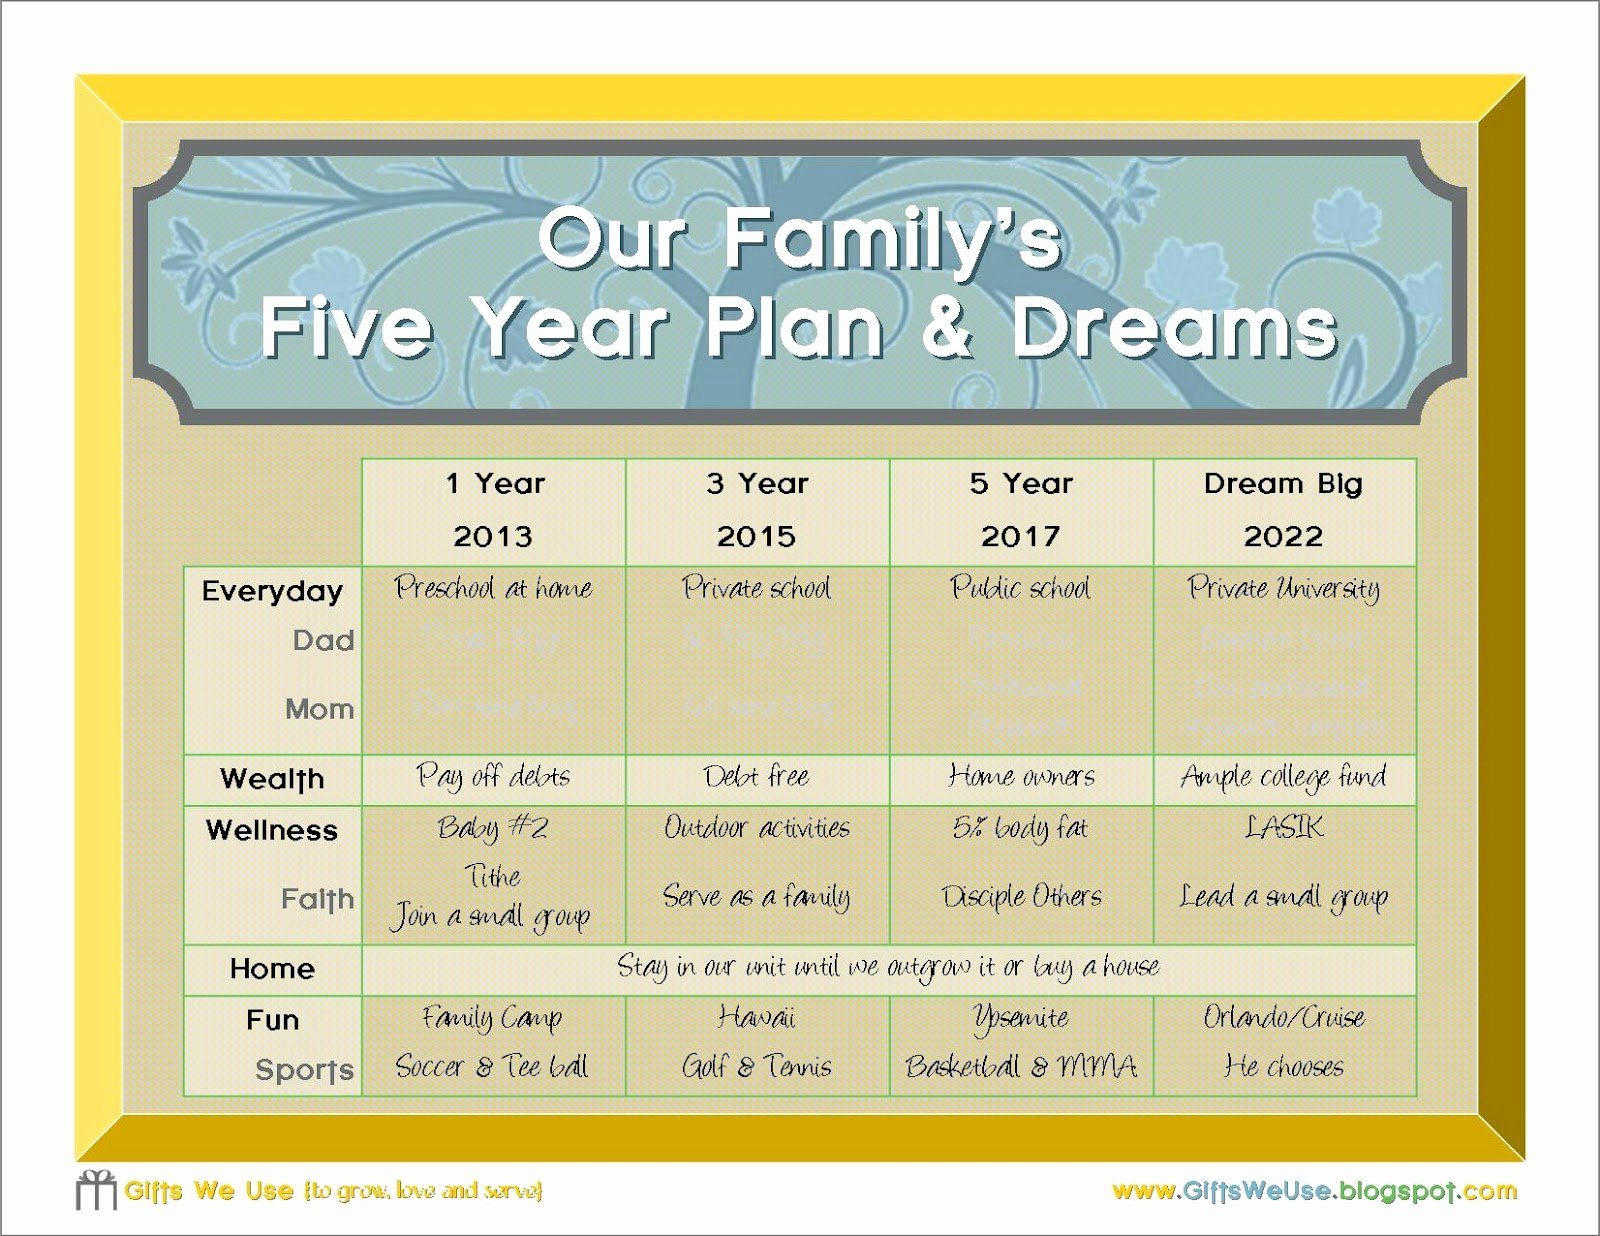 Gifts We Use Family 5 Year Plan & A Printable